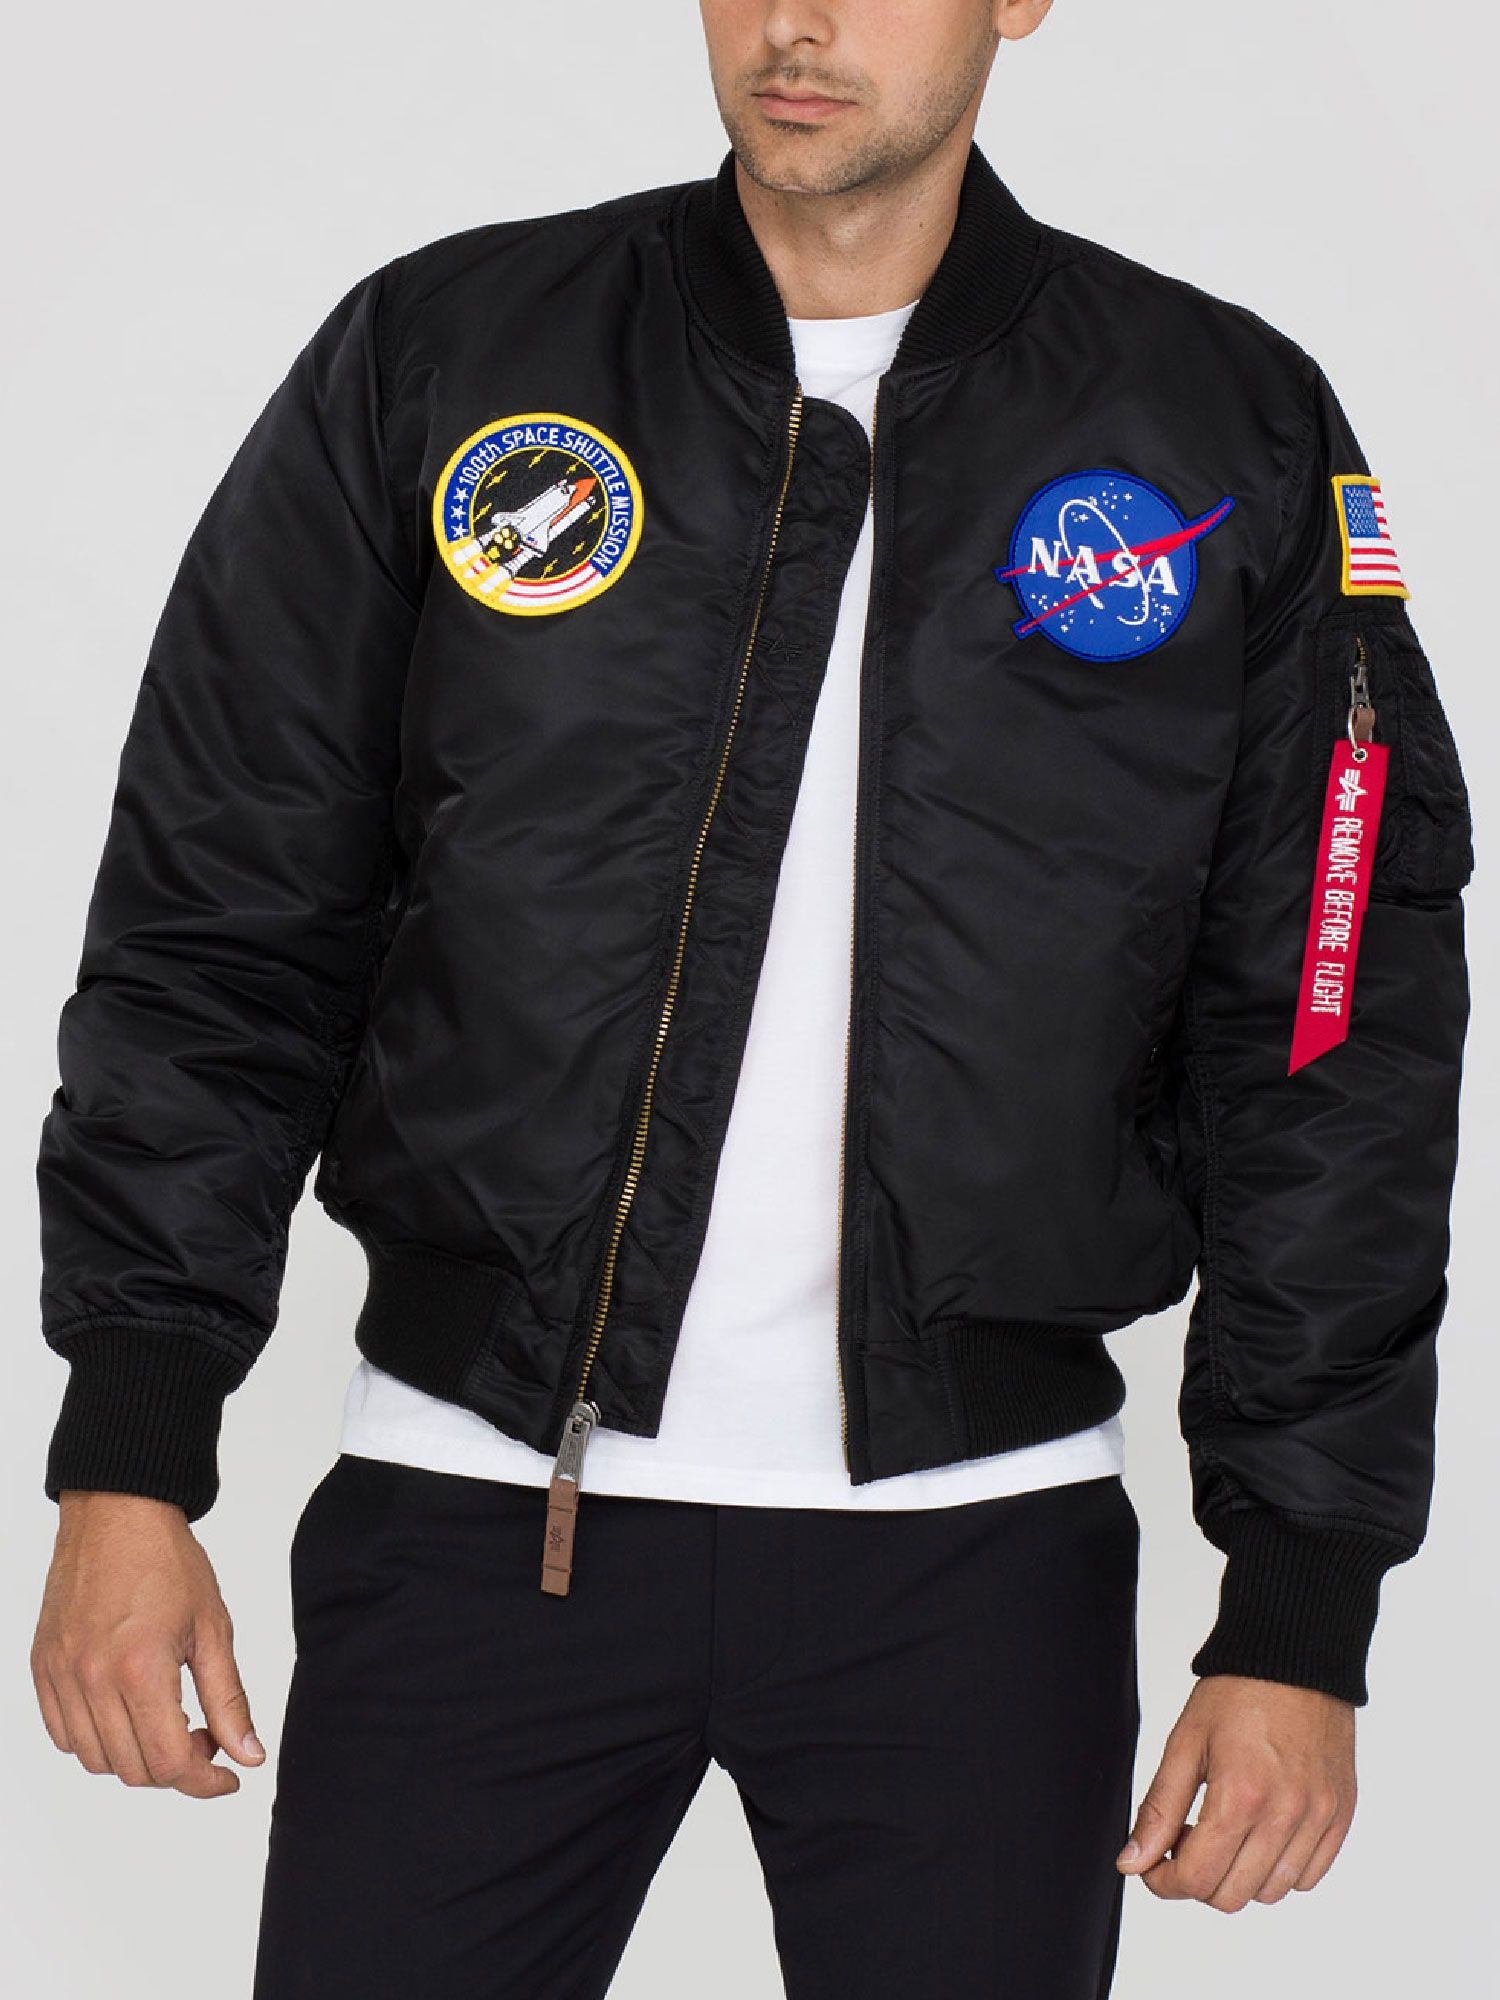 15 Pieces of NASA Gear Every Space Lover Should Own